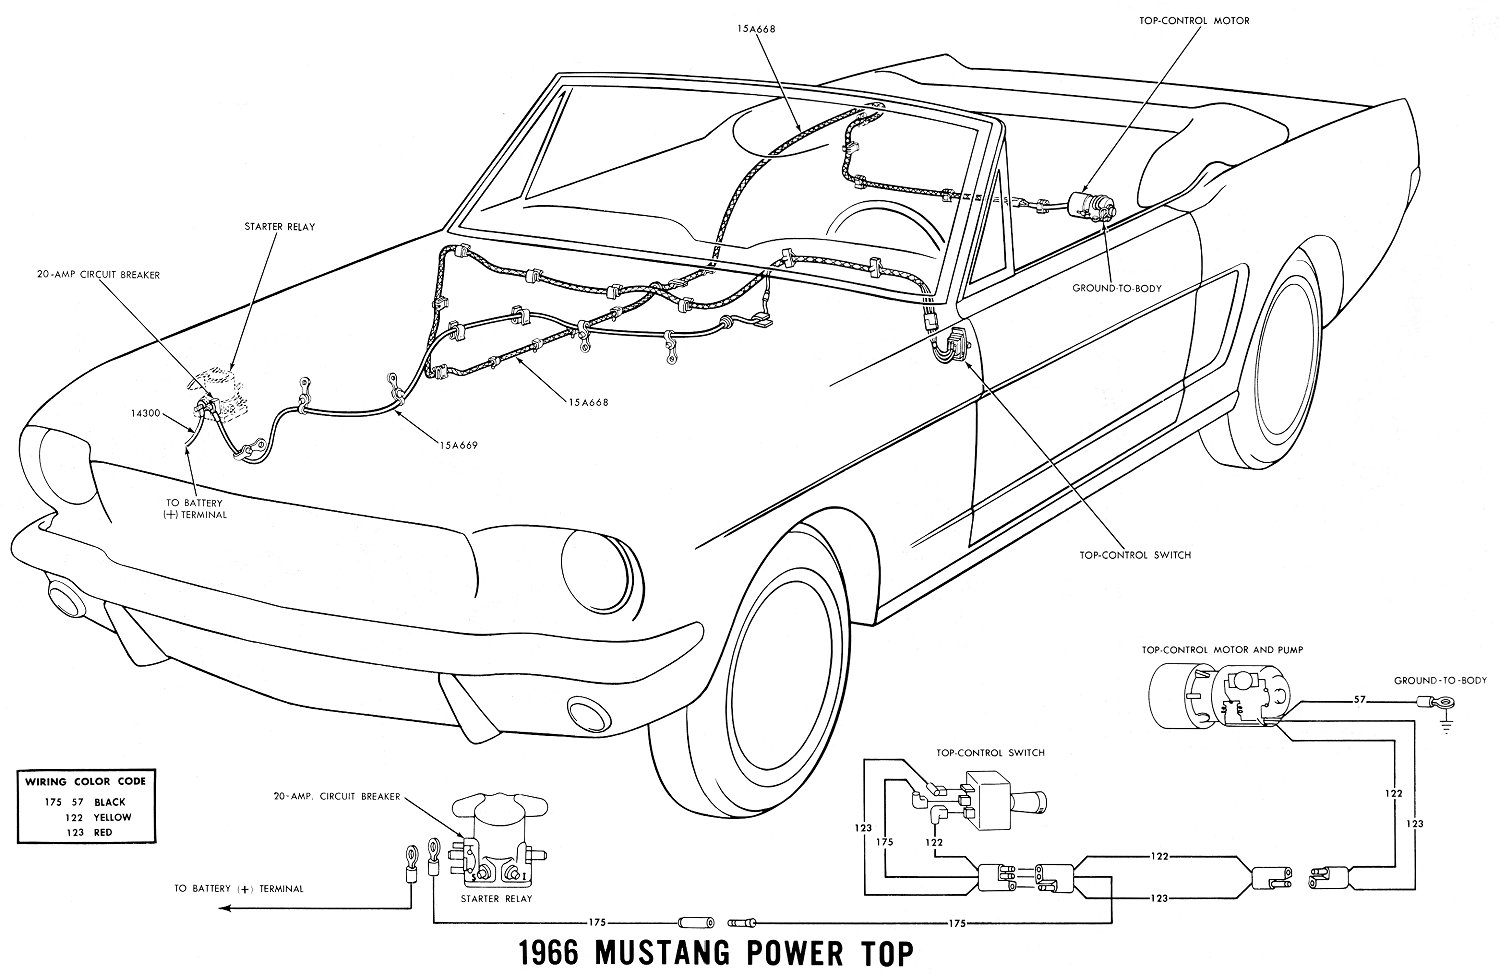 66 mustang ignition wiring diagram baumatic oven element 1966 diagrams average joe restoration